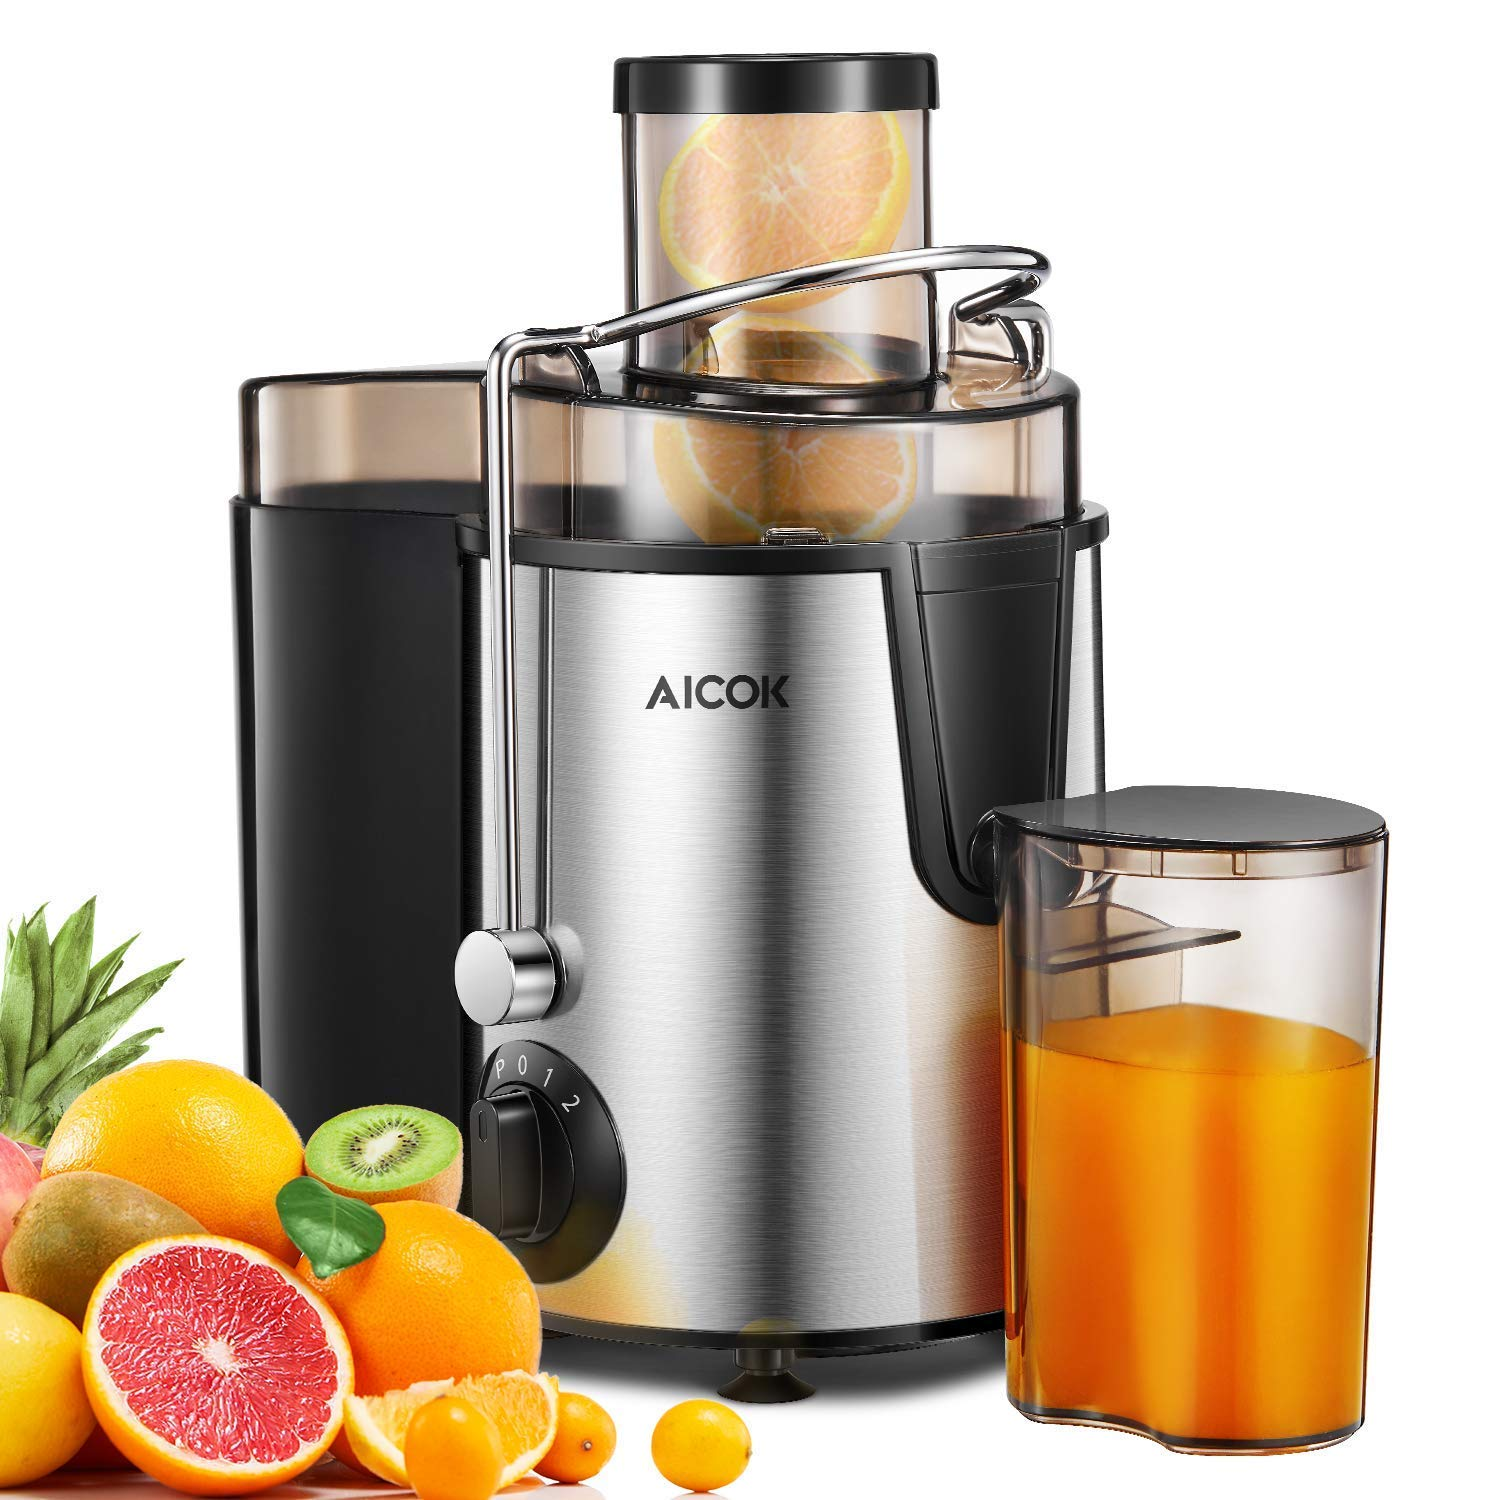 Juicer Aicok Juicer Machines for Whole Fruit and Vegetable, Juicer Juice Extractor